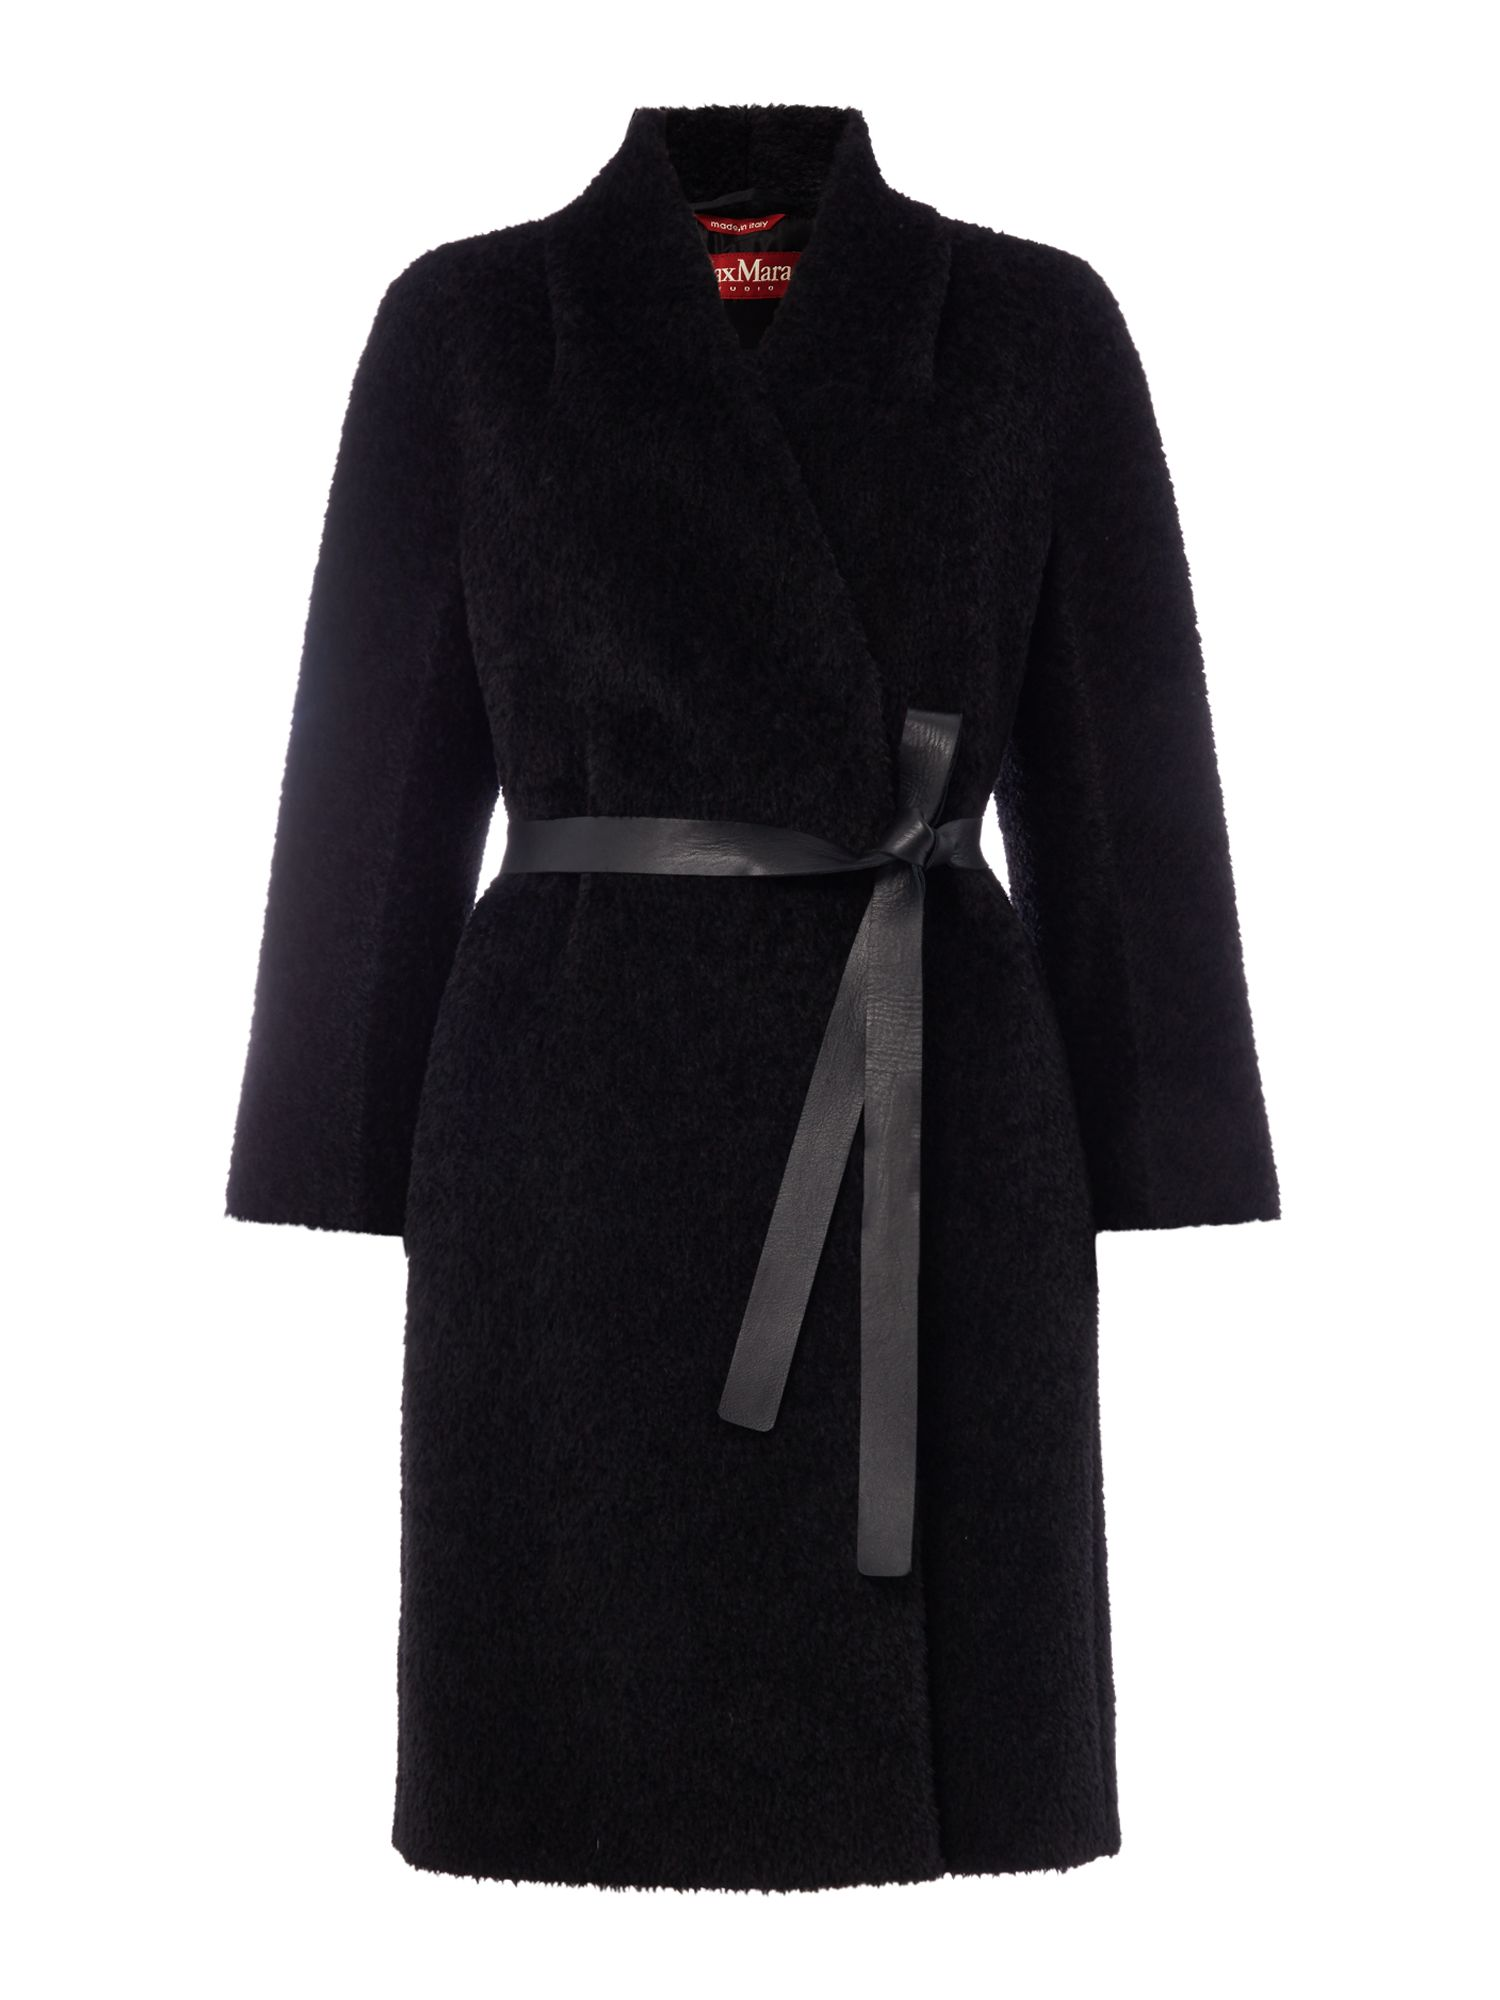 Max Mara Studio Pareo alpaca wool coat with tie waist, Black